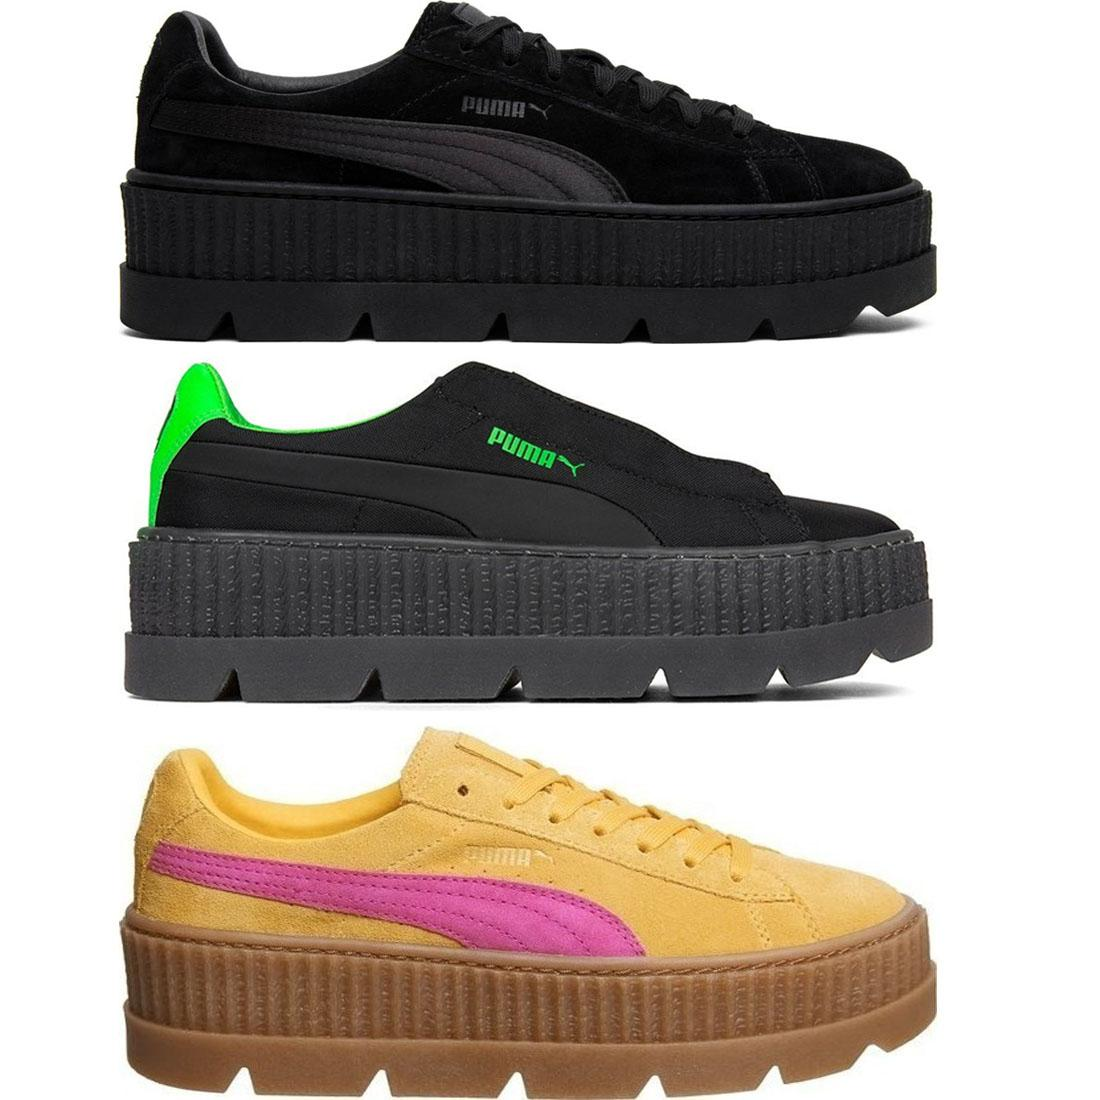 buy popular b76d2 c0c63 Details about PUMA Fenty X Rihanna Cleated Creeper Ladies Suede Black Green  Yellow Trainers